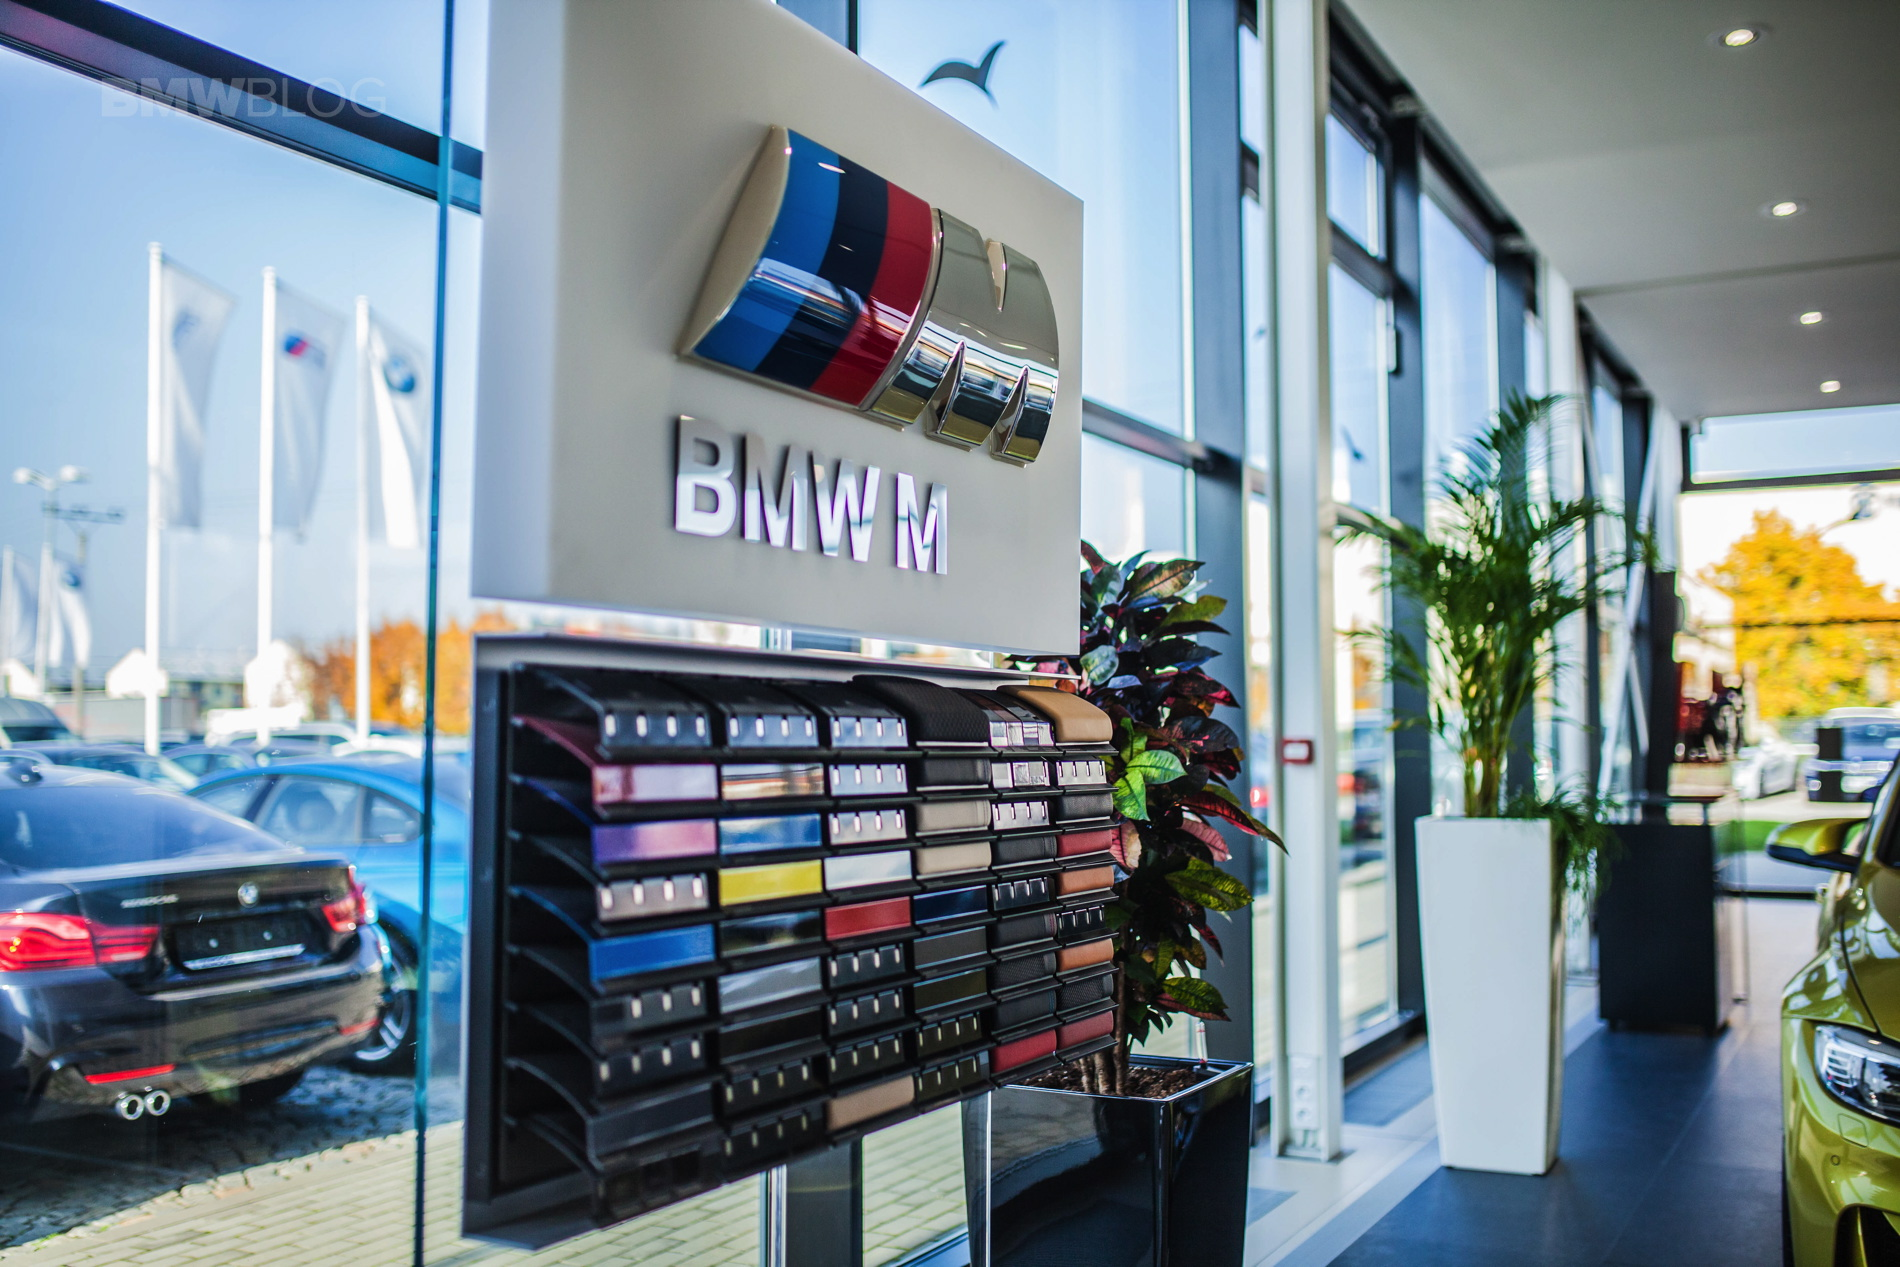 BMW M Showroom Is Opened in Brno 09